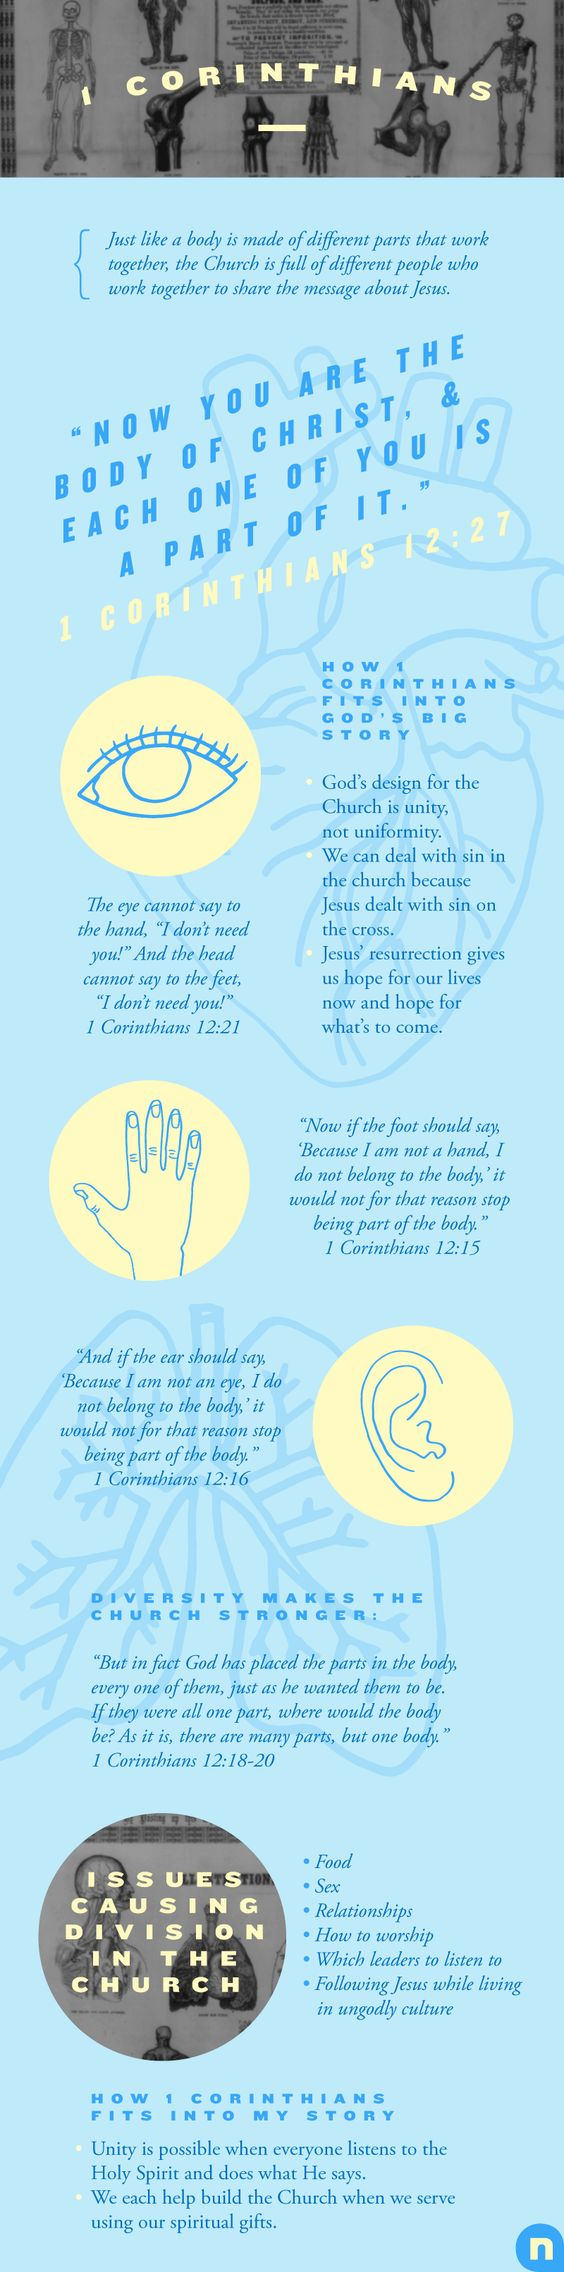 Everything You Need To Know About 1 Corinthians | Articles | NewSpring Church